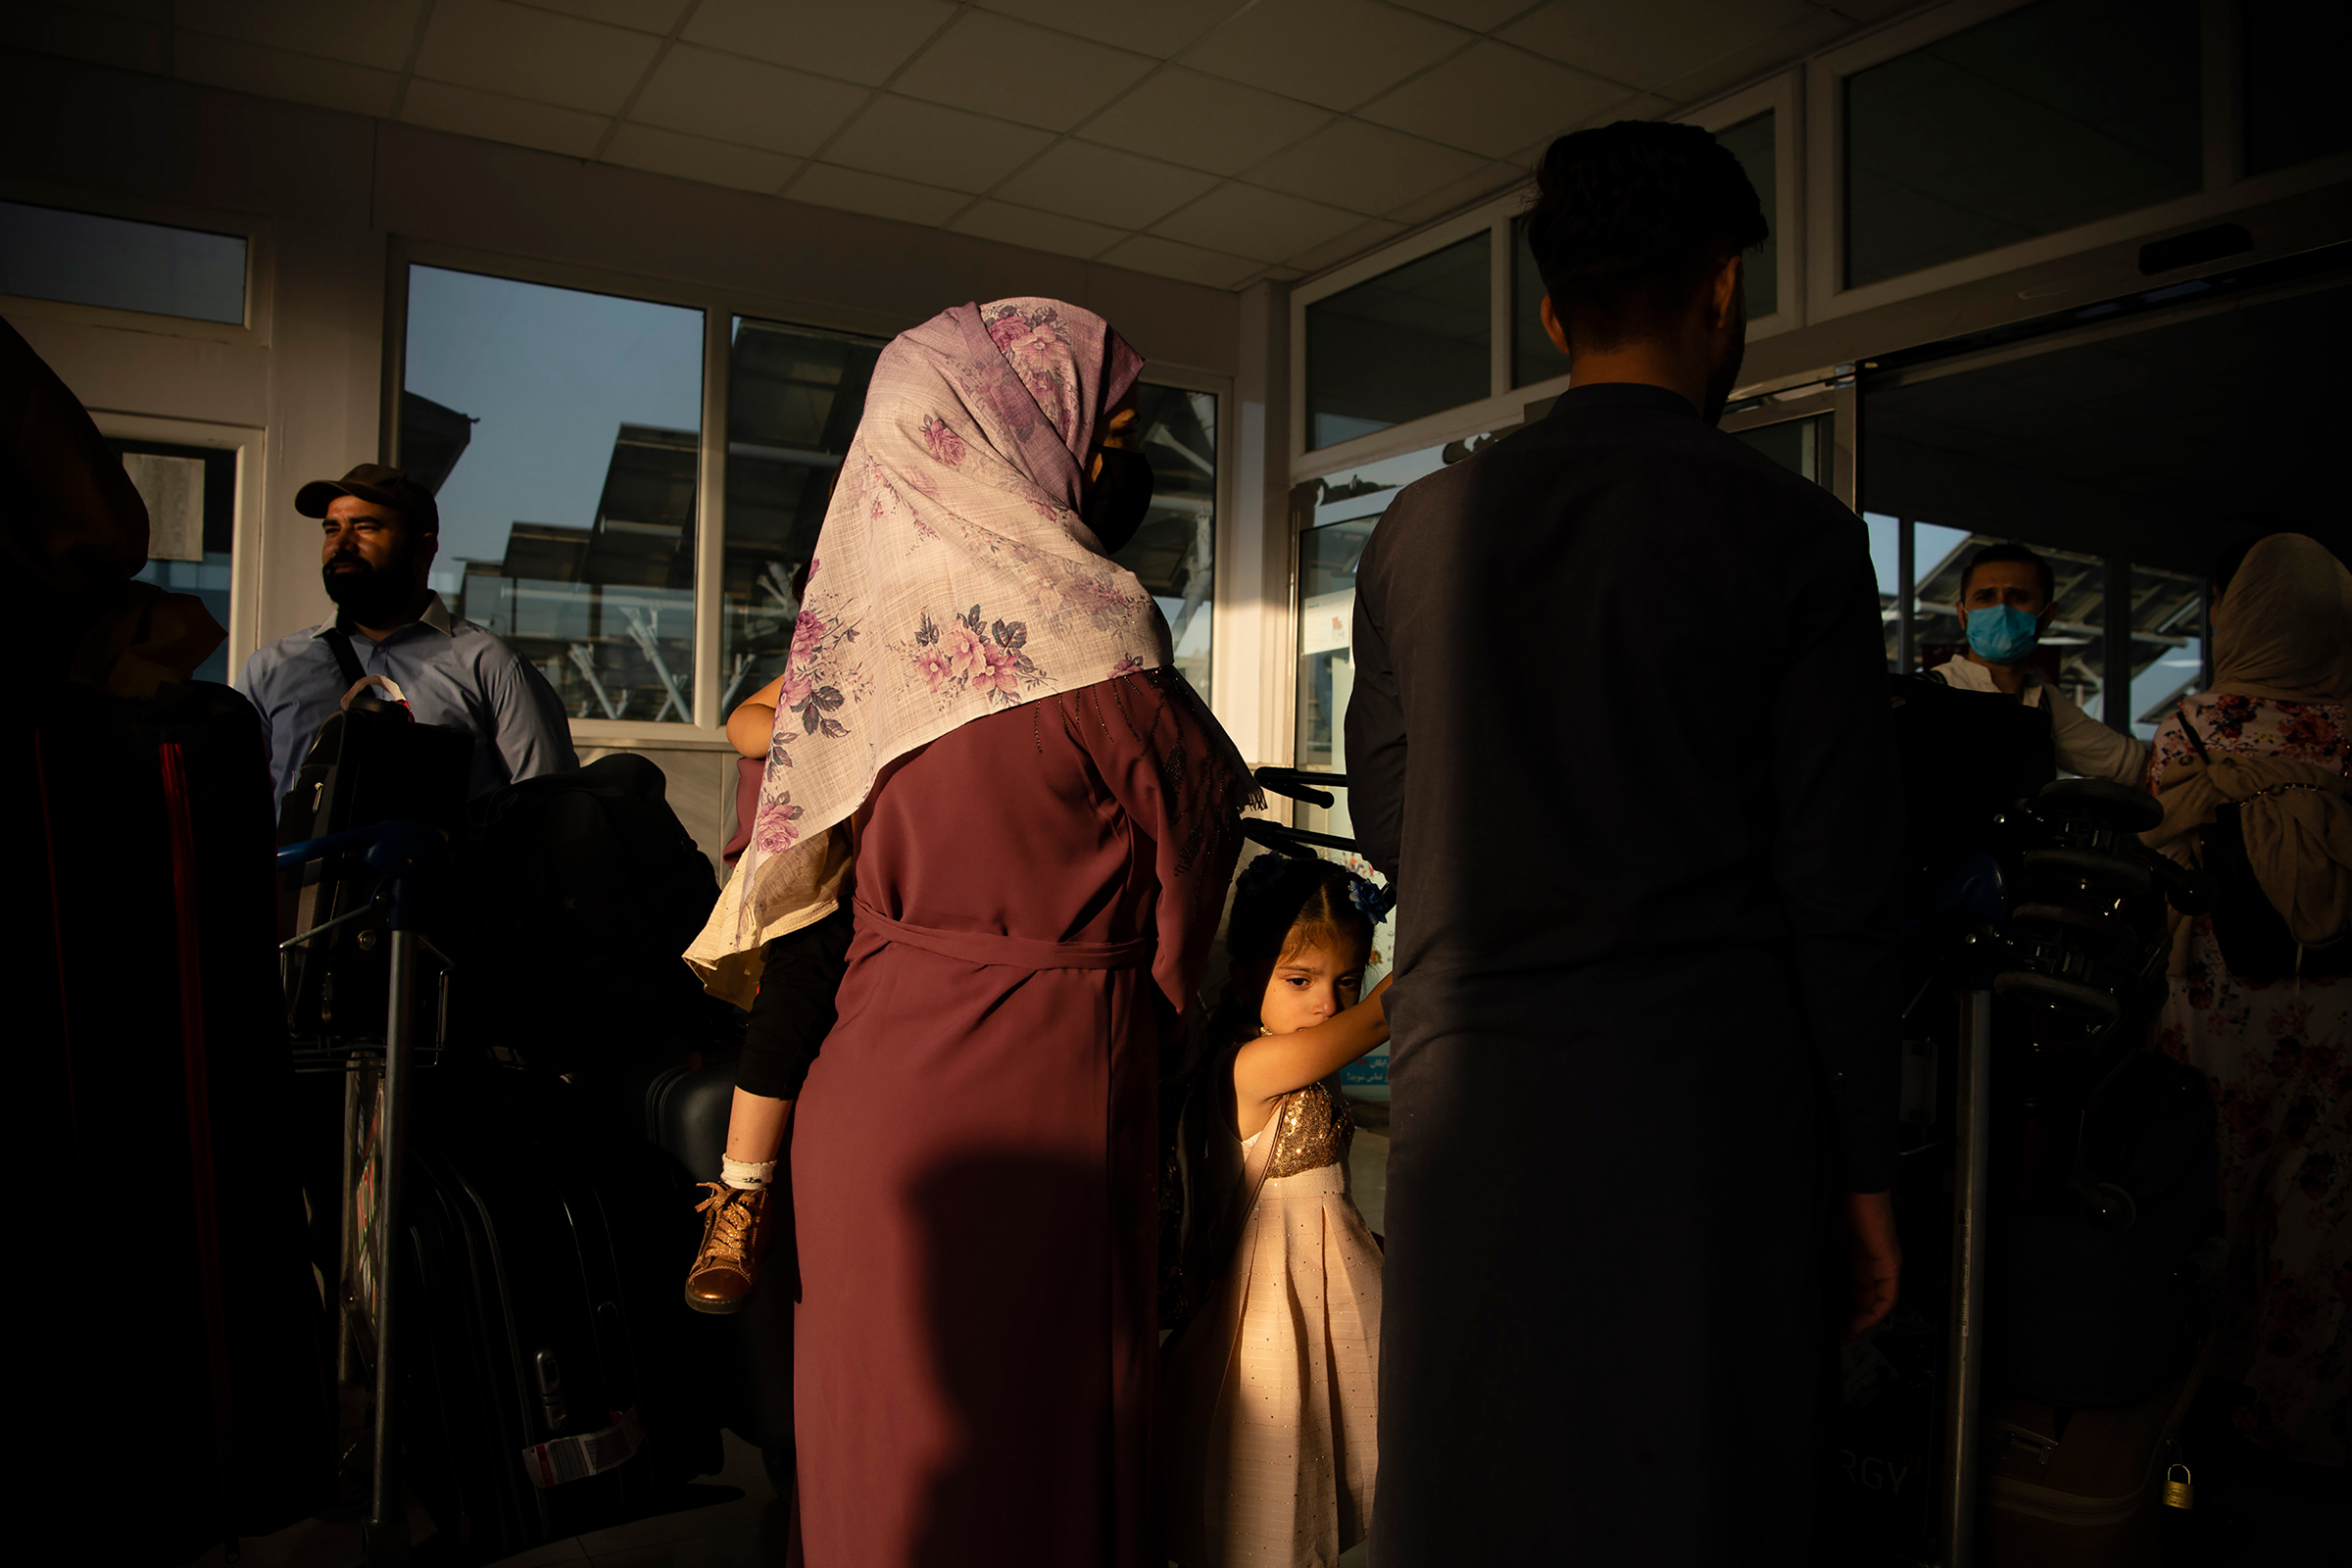 Ahead of the Taliban's arrival, Afghans and travelers pass through checkpoints at Hamid Karzai International Airport in Kabul on Aug. 15.